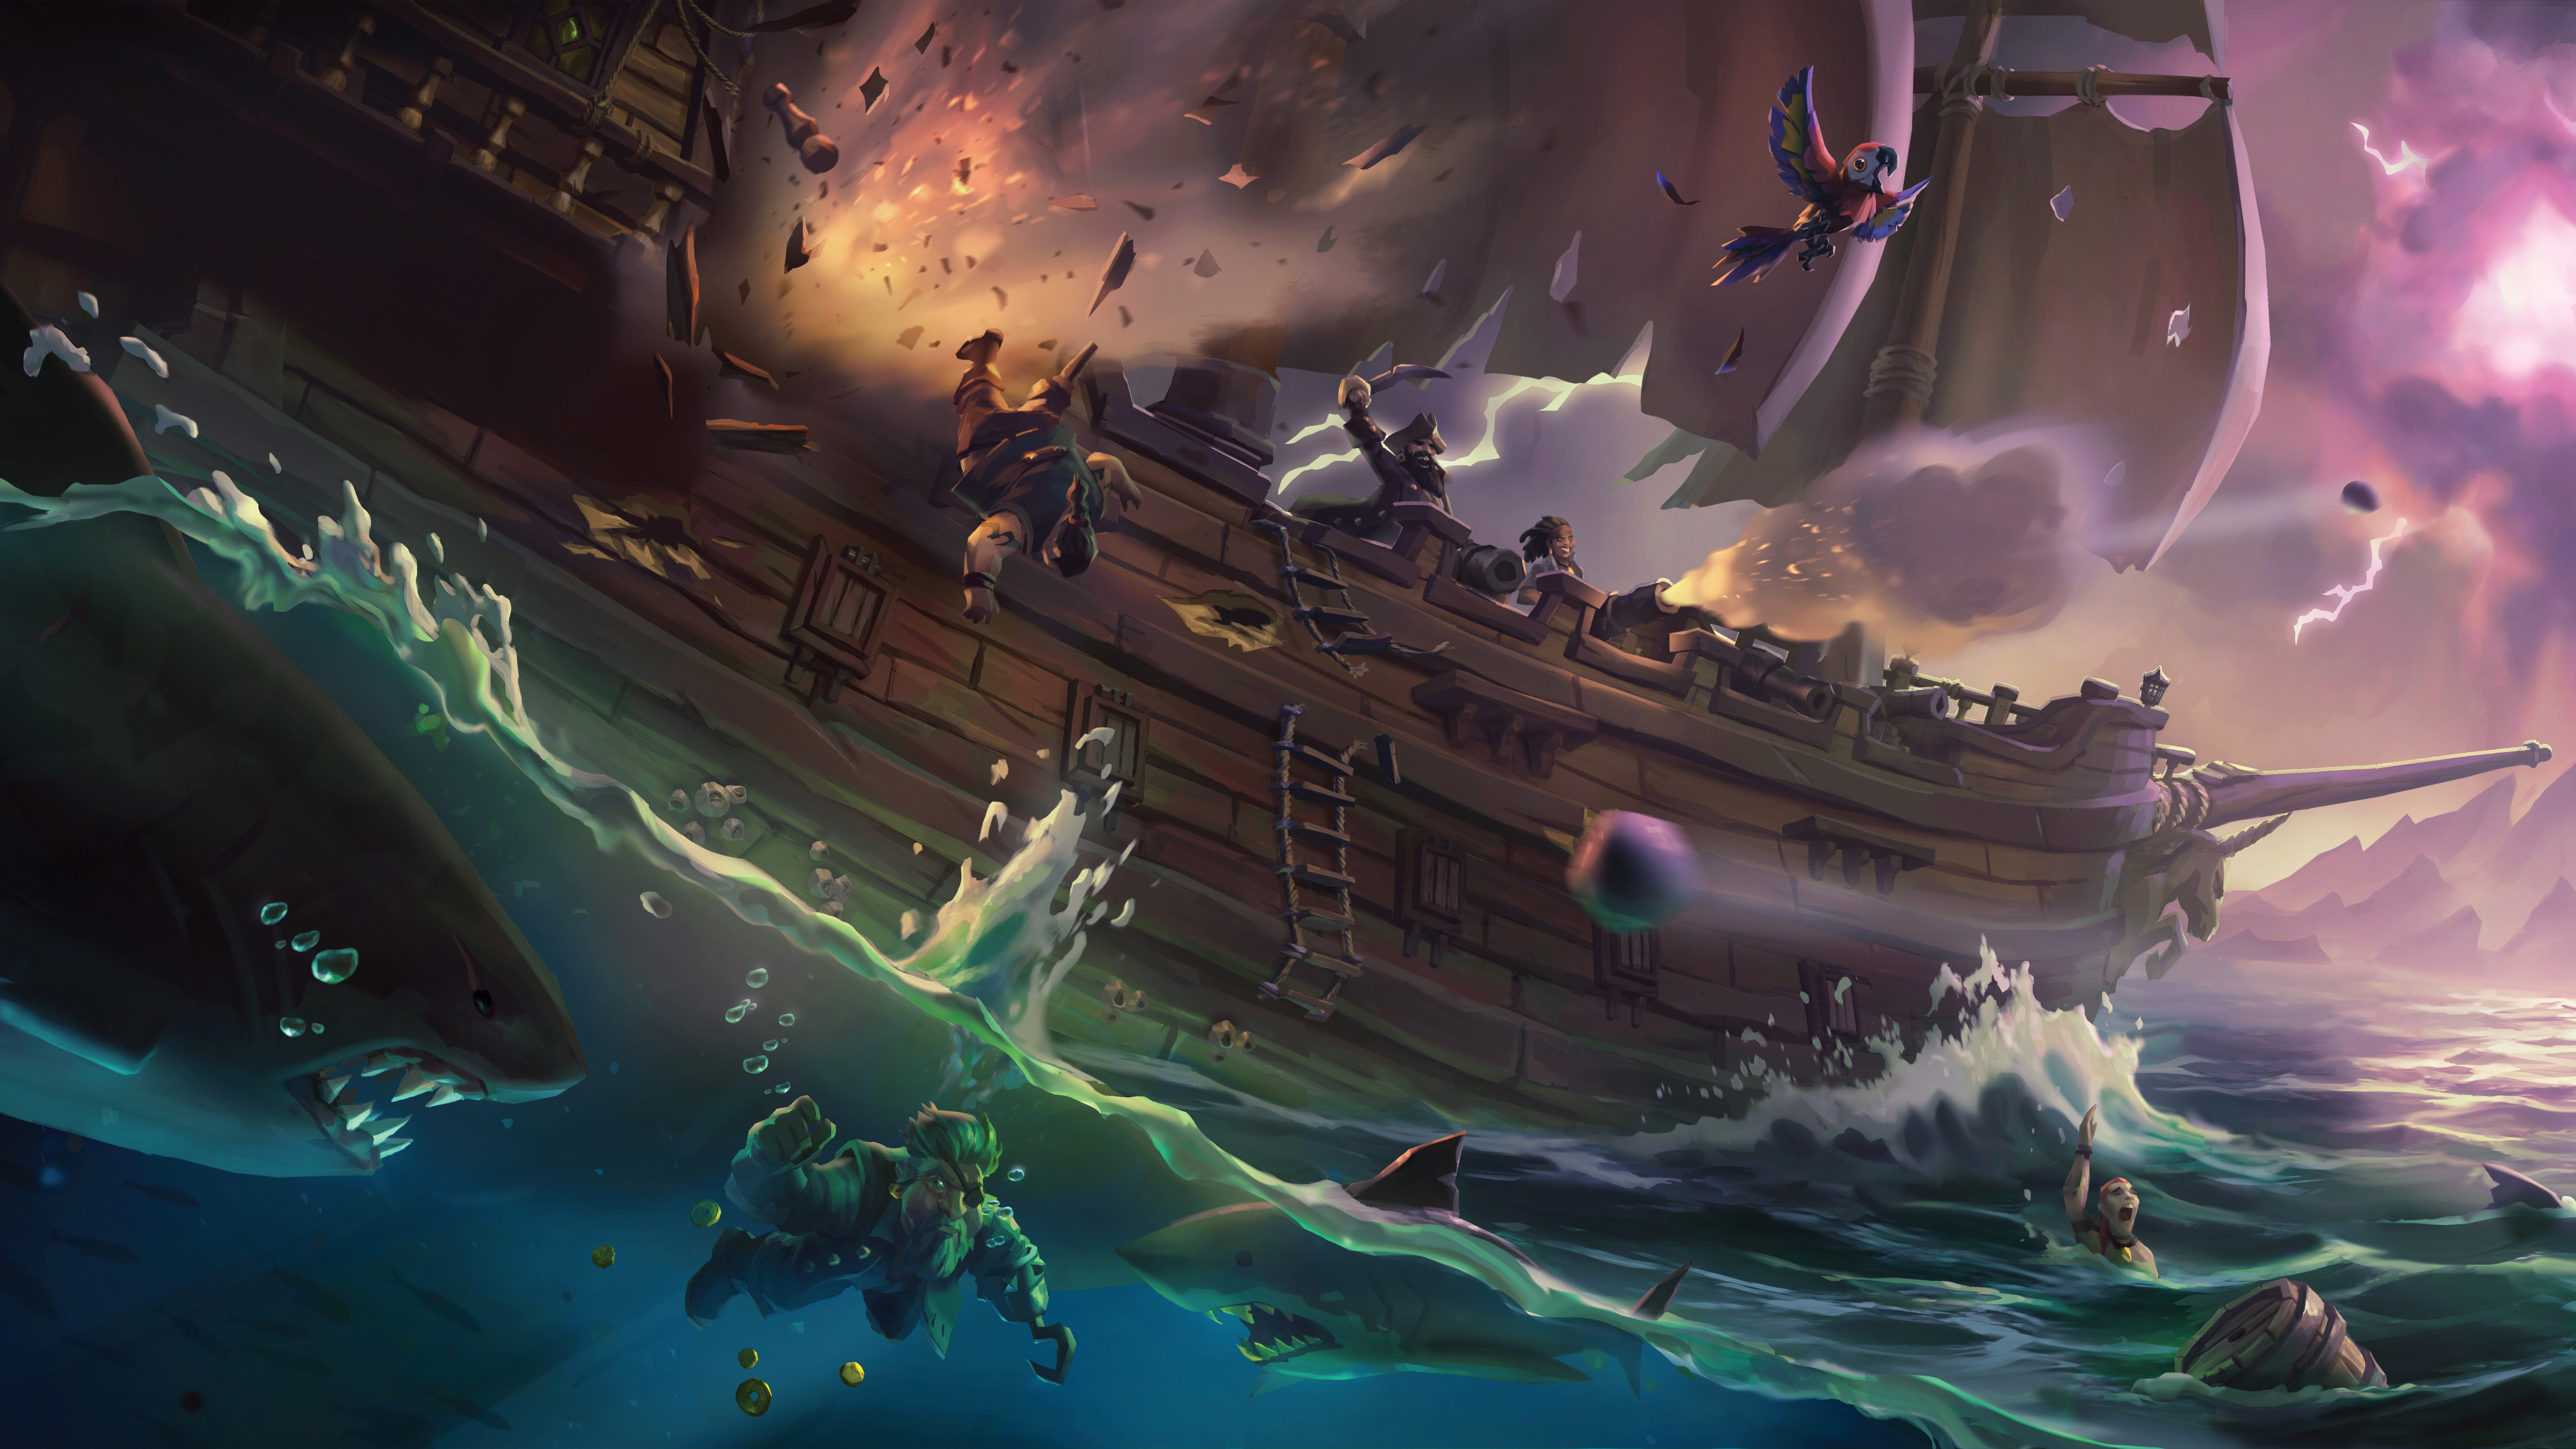 28 Sea Of Thieves Hd Wallpapers Background Images Wallpaper Abyss